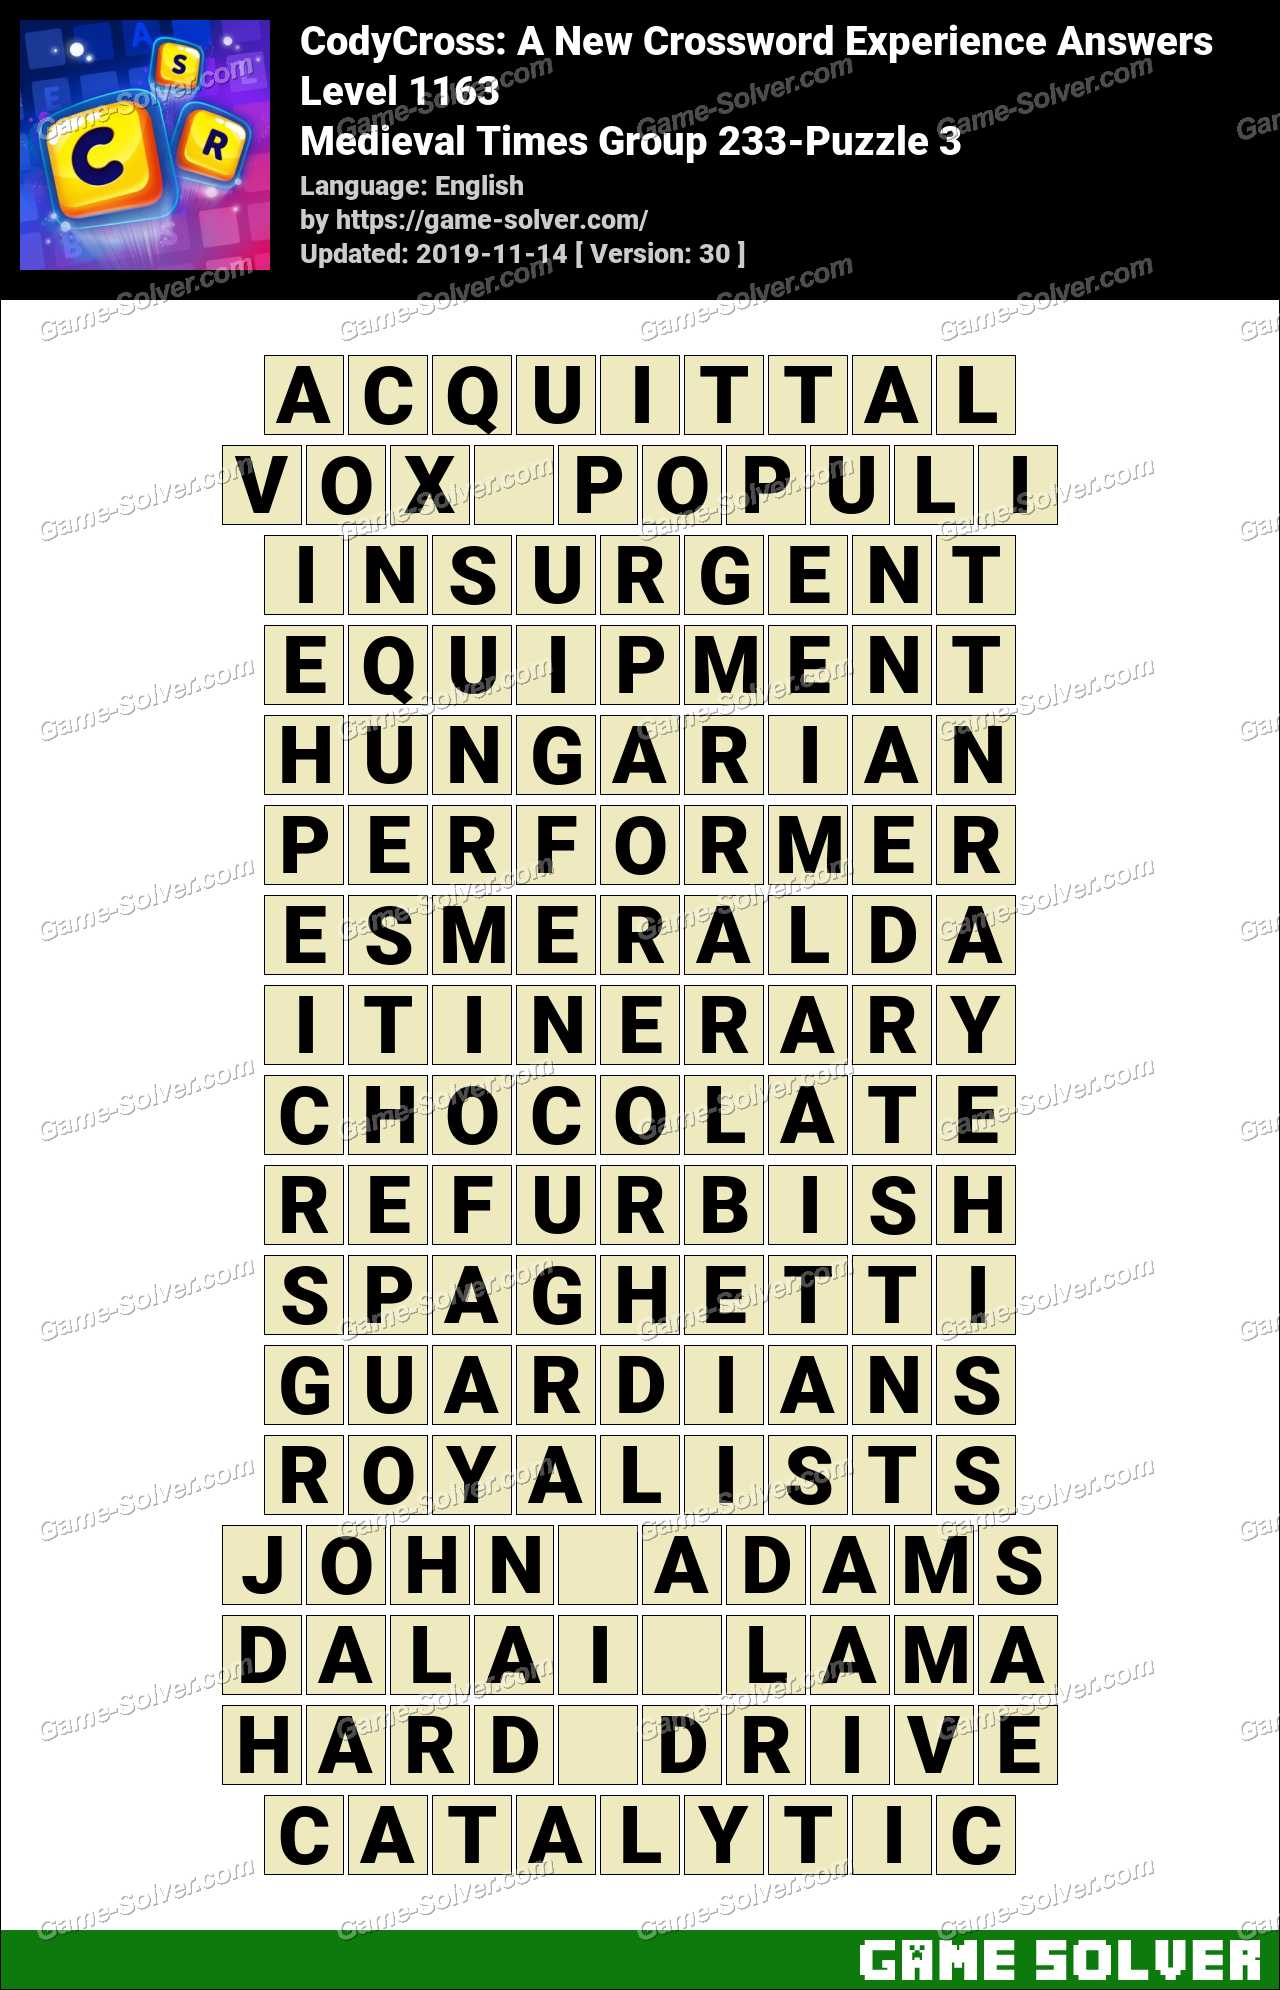 CodyCross Medieval Times Group 233-Puzzle 3 Answers